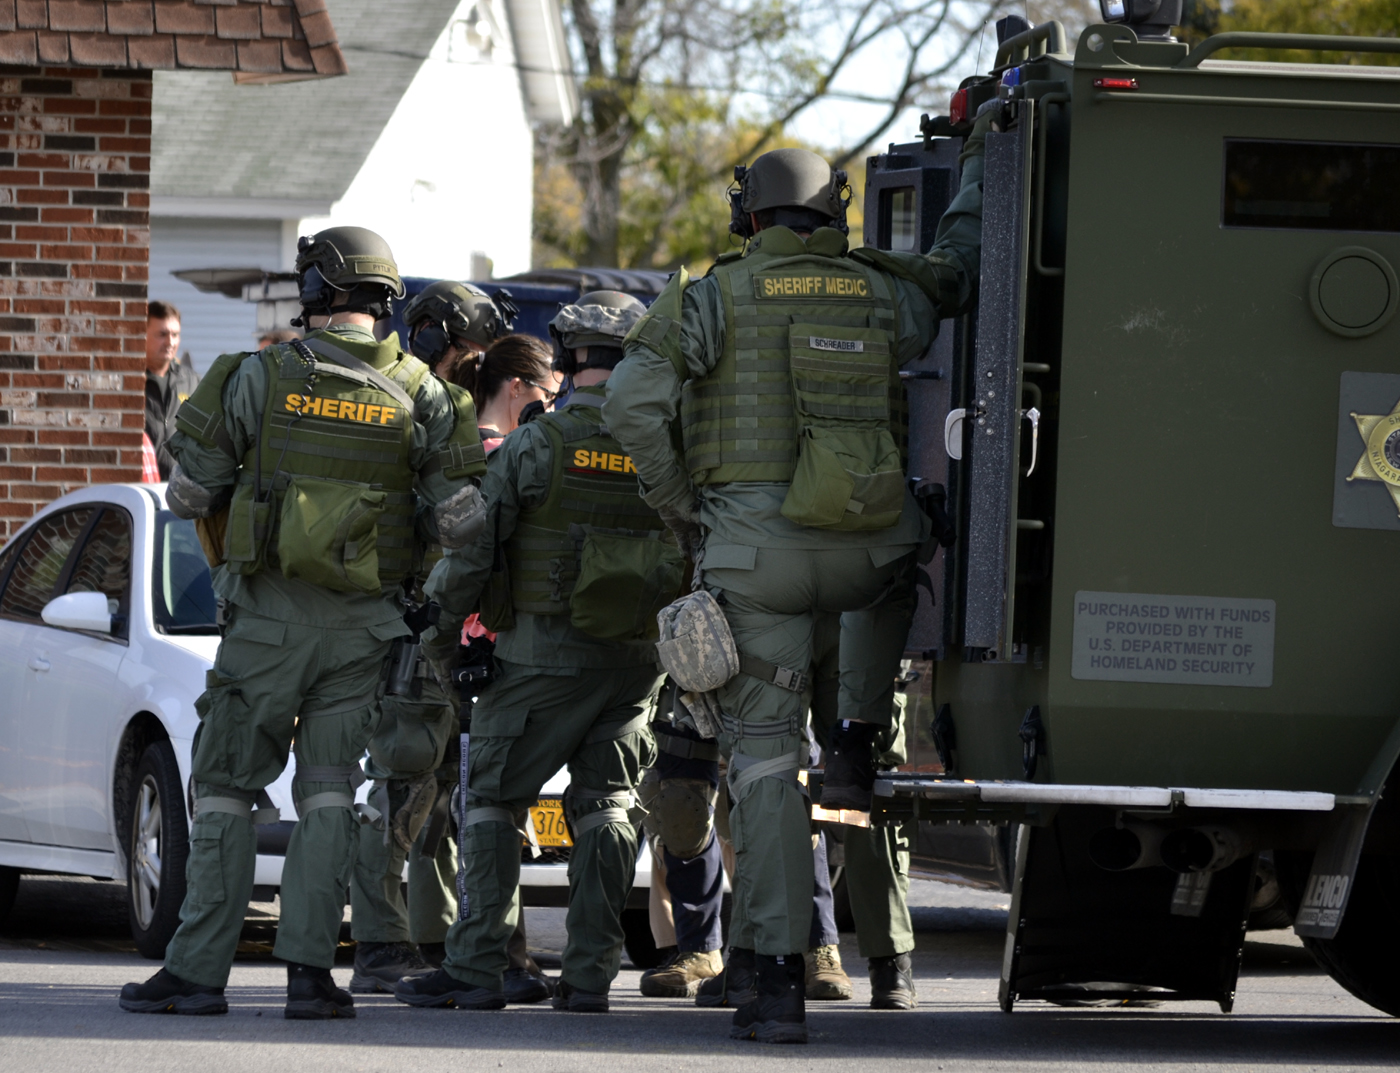 Niagara County sheriff's deputies surrounded a house in the 2900 block of Niagara Falls Boulevard  on Monday, Oct. 31, 2016 after receiving a complaint about a domestic violence incident involving a man with a gun. The situation ended when a male suspect exited the home unarmed and was arrested. (Photo by Larry Kensinger)